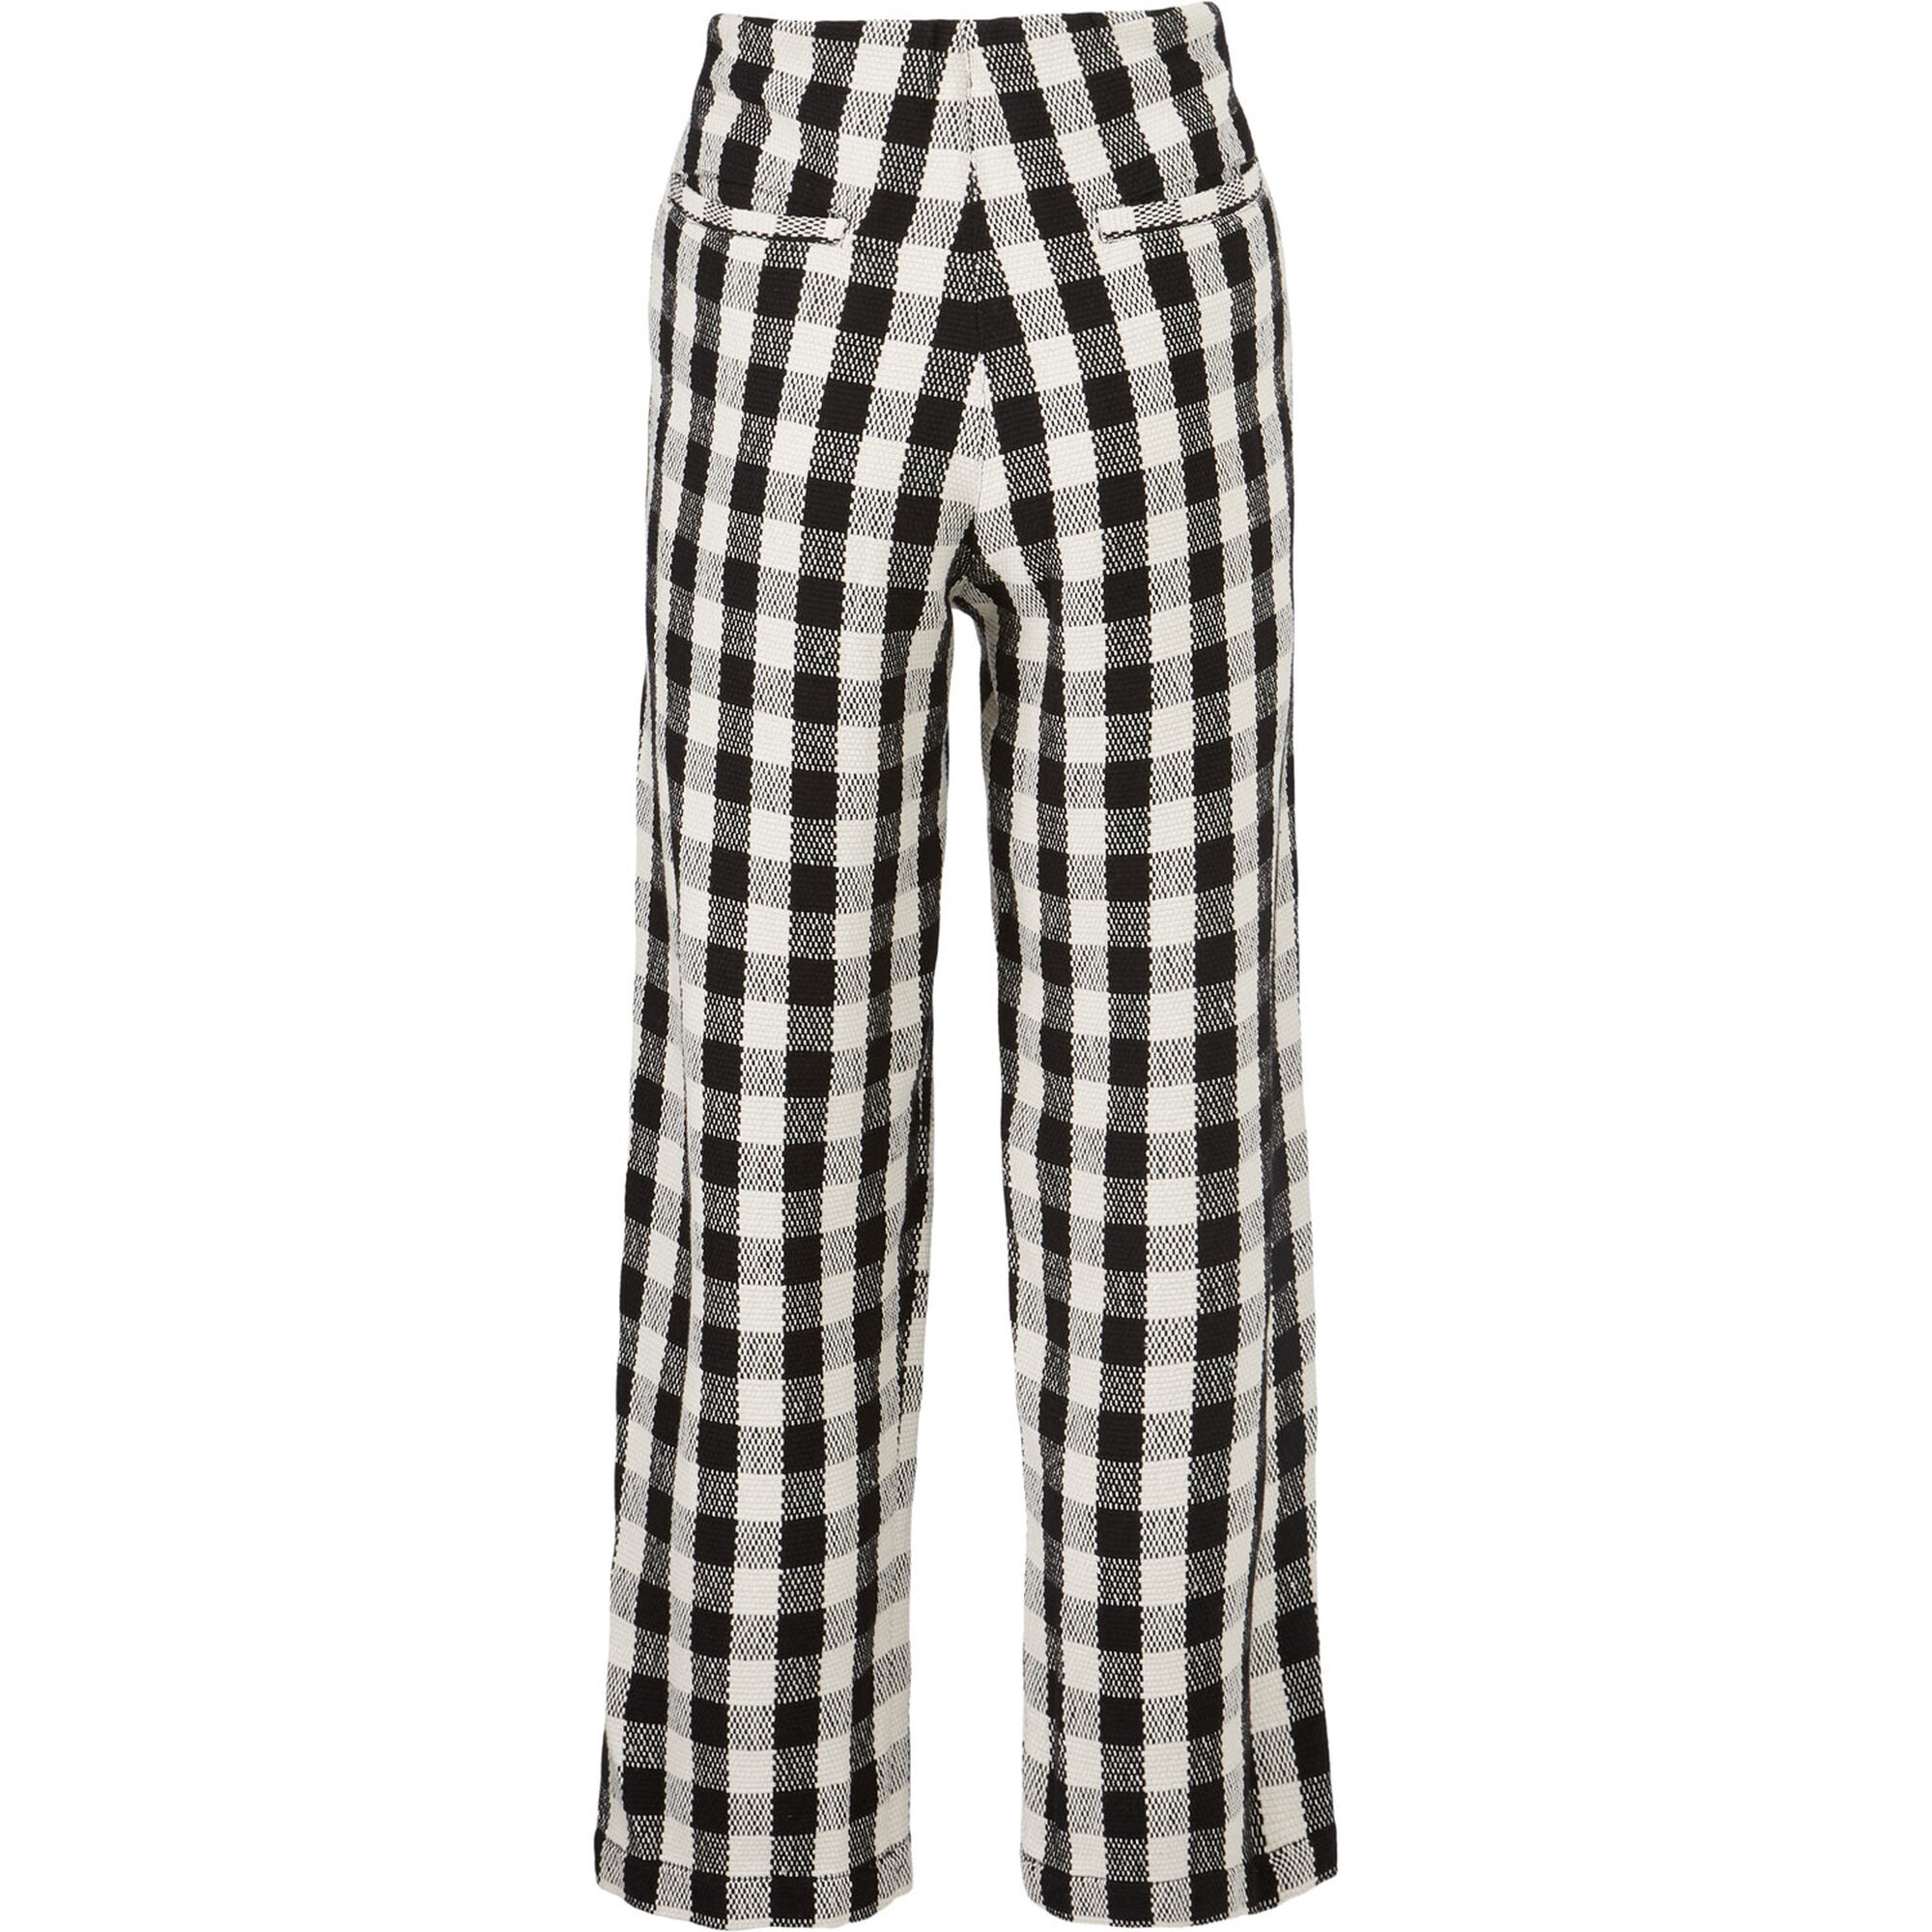 PETULIA TROUSERS, Black, hi-res